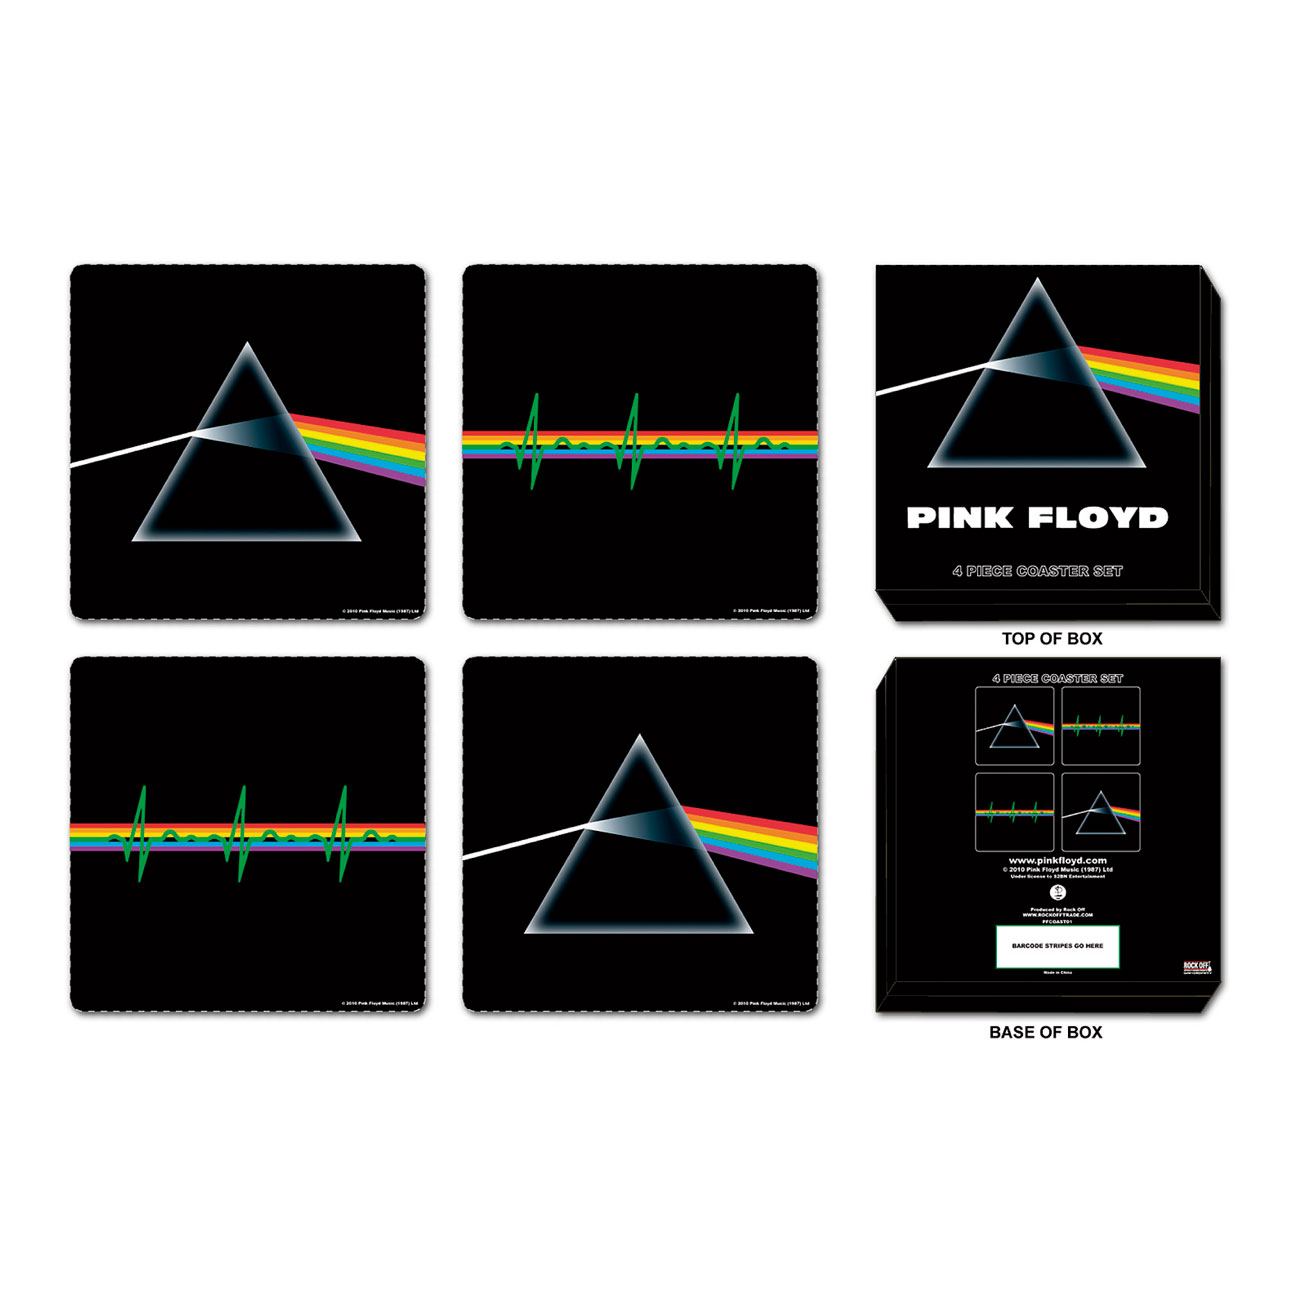 Pink Floyd Coaster - Box 4. Emi Music officially licensed product.